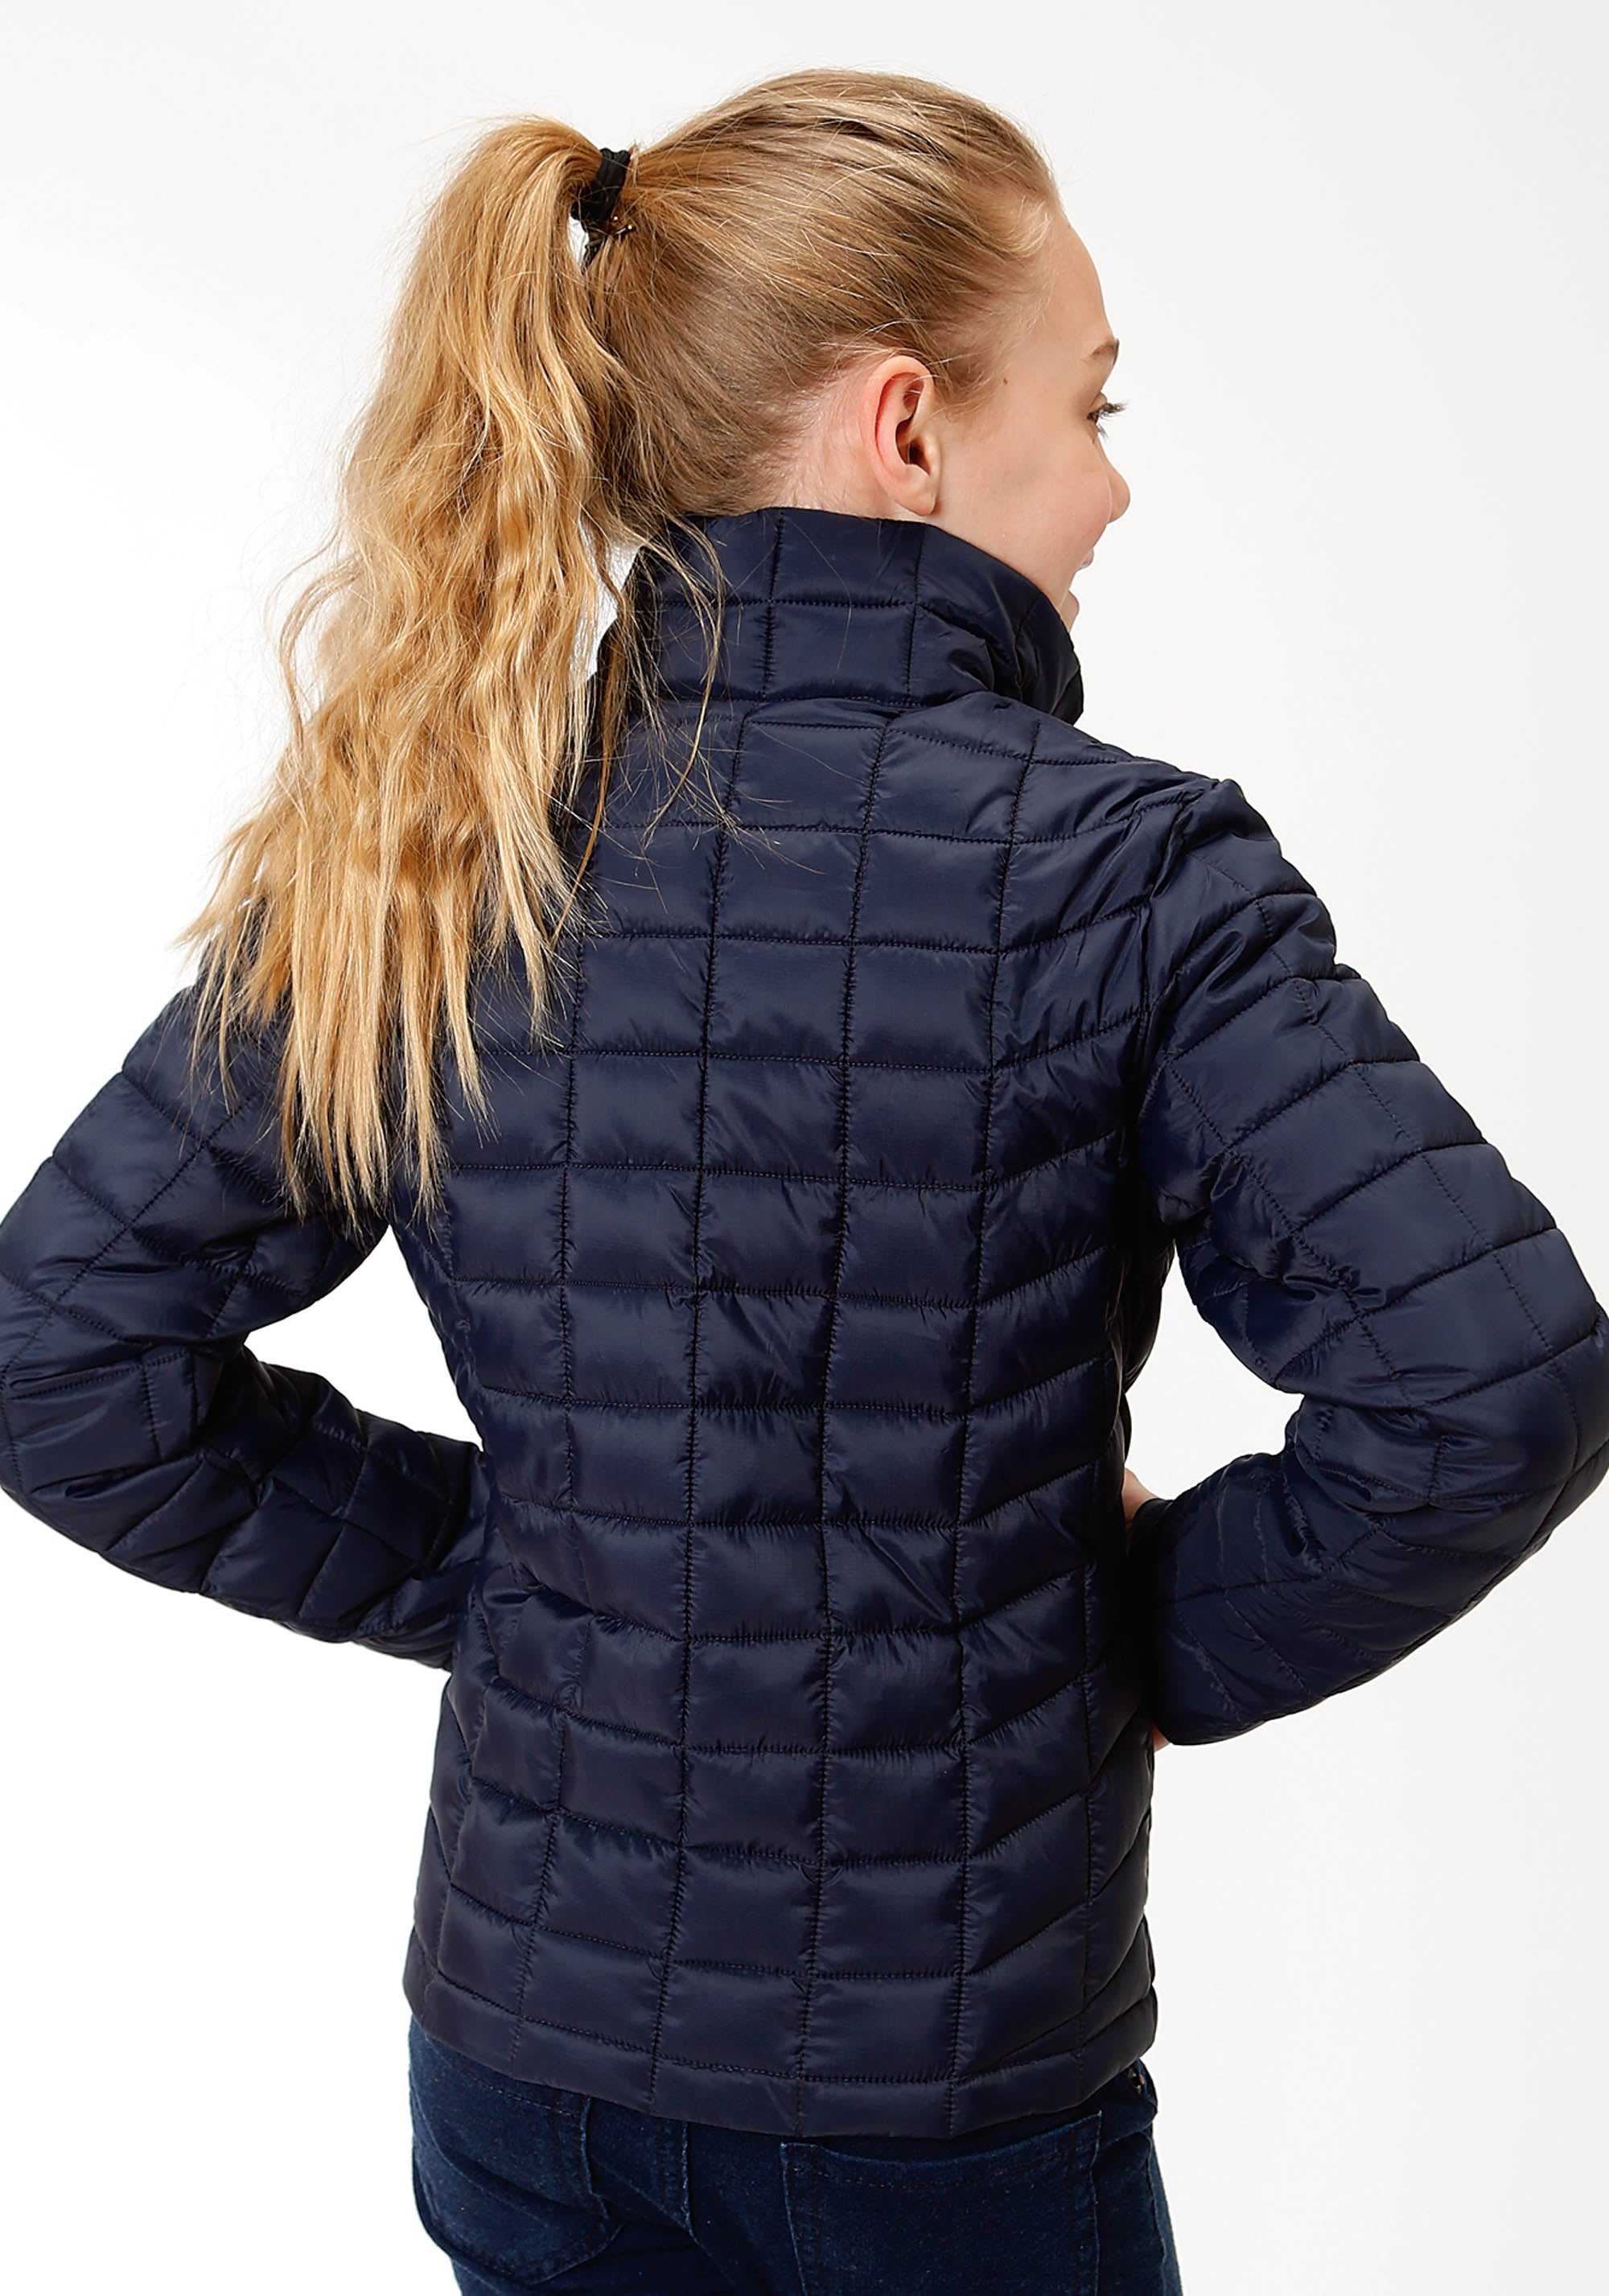 OUTERWEAR GIRLS NAVY 4043 POLY FILLED NYLON JACKET CRUSHABLE